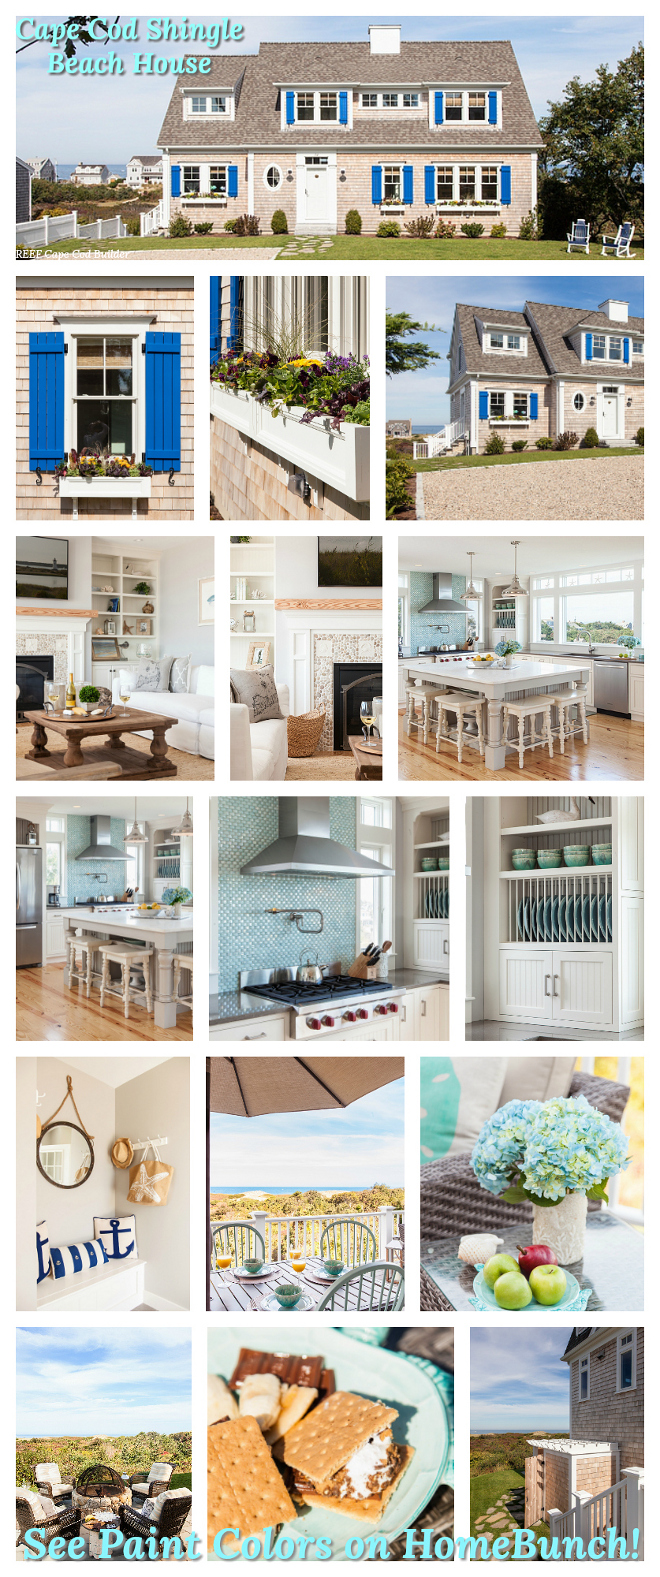 Cape Cod Shingle Beach House Paint Color Color Palette